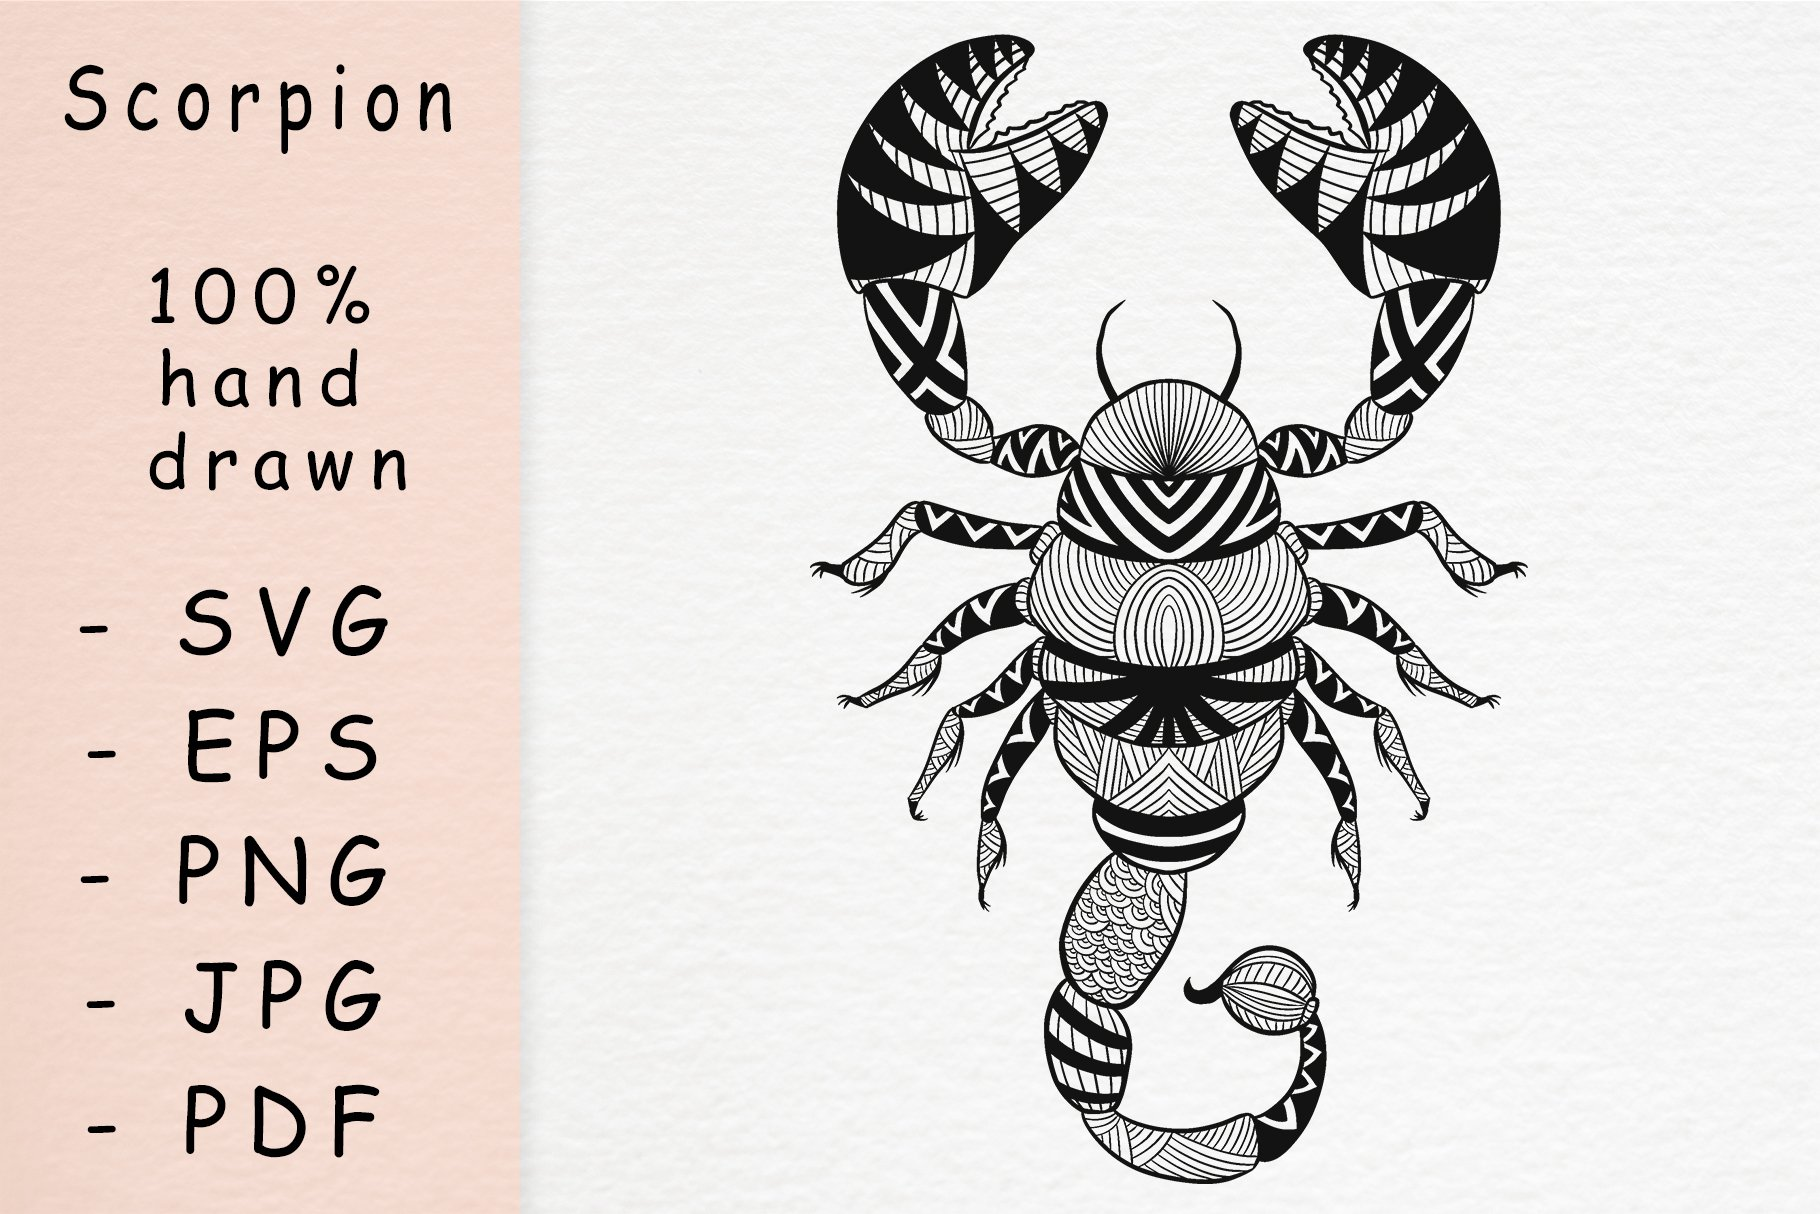 Hand drawn scorpion with patterns example image 1